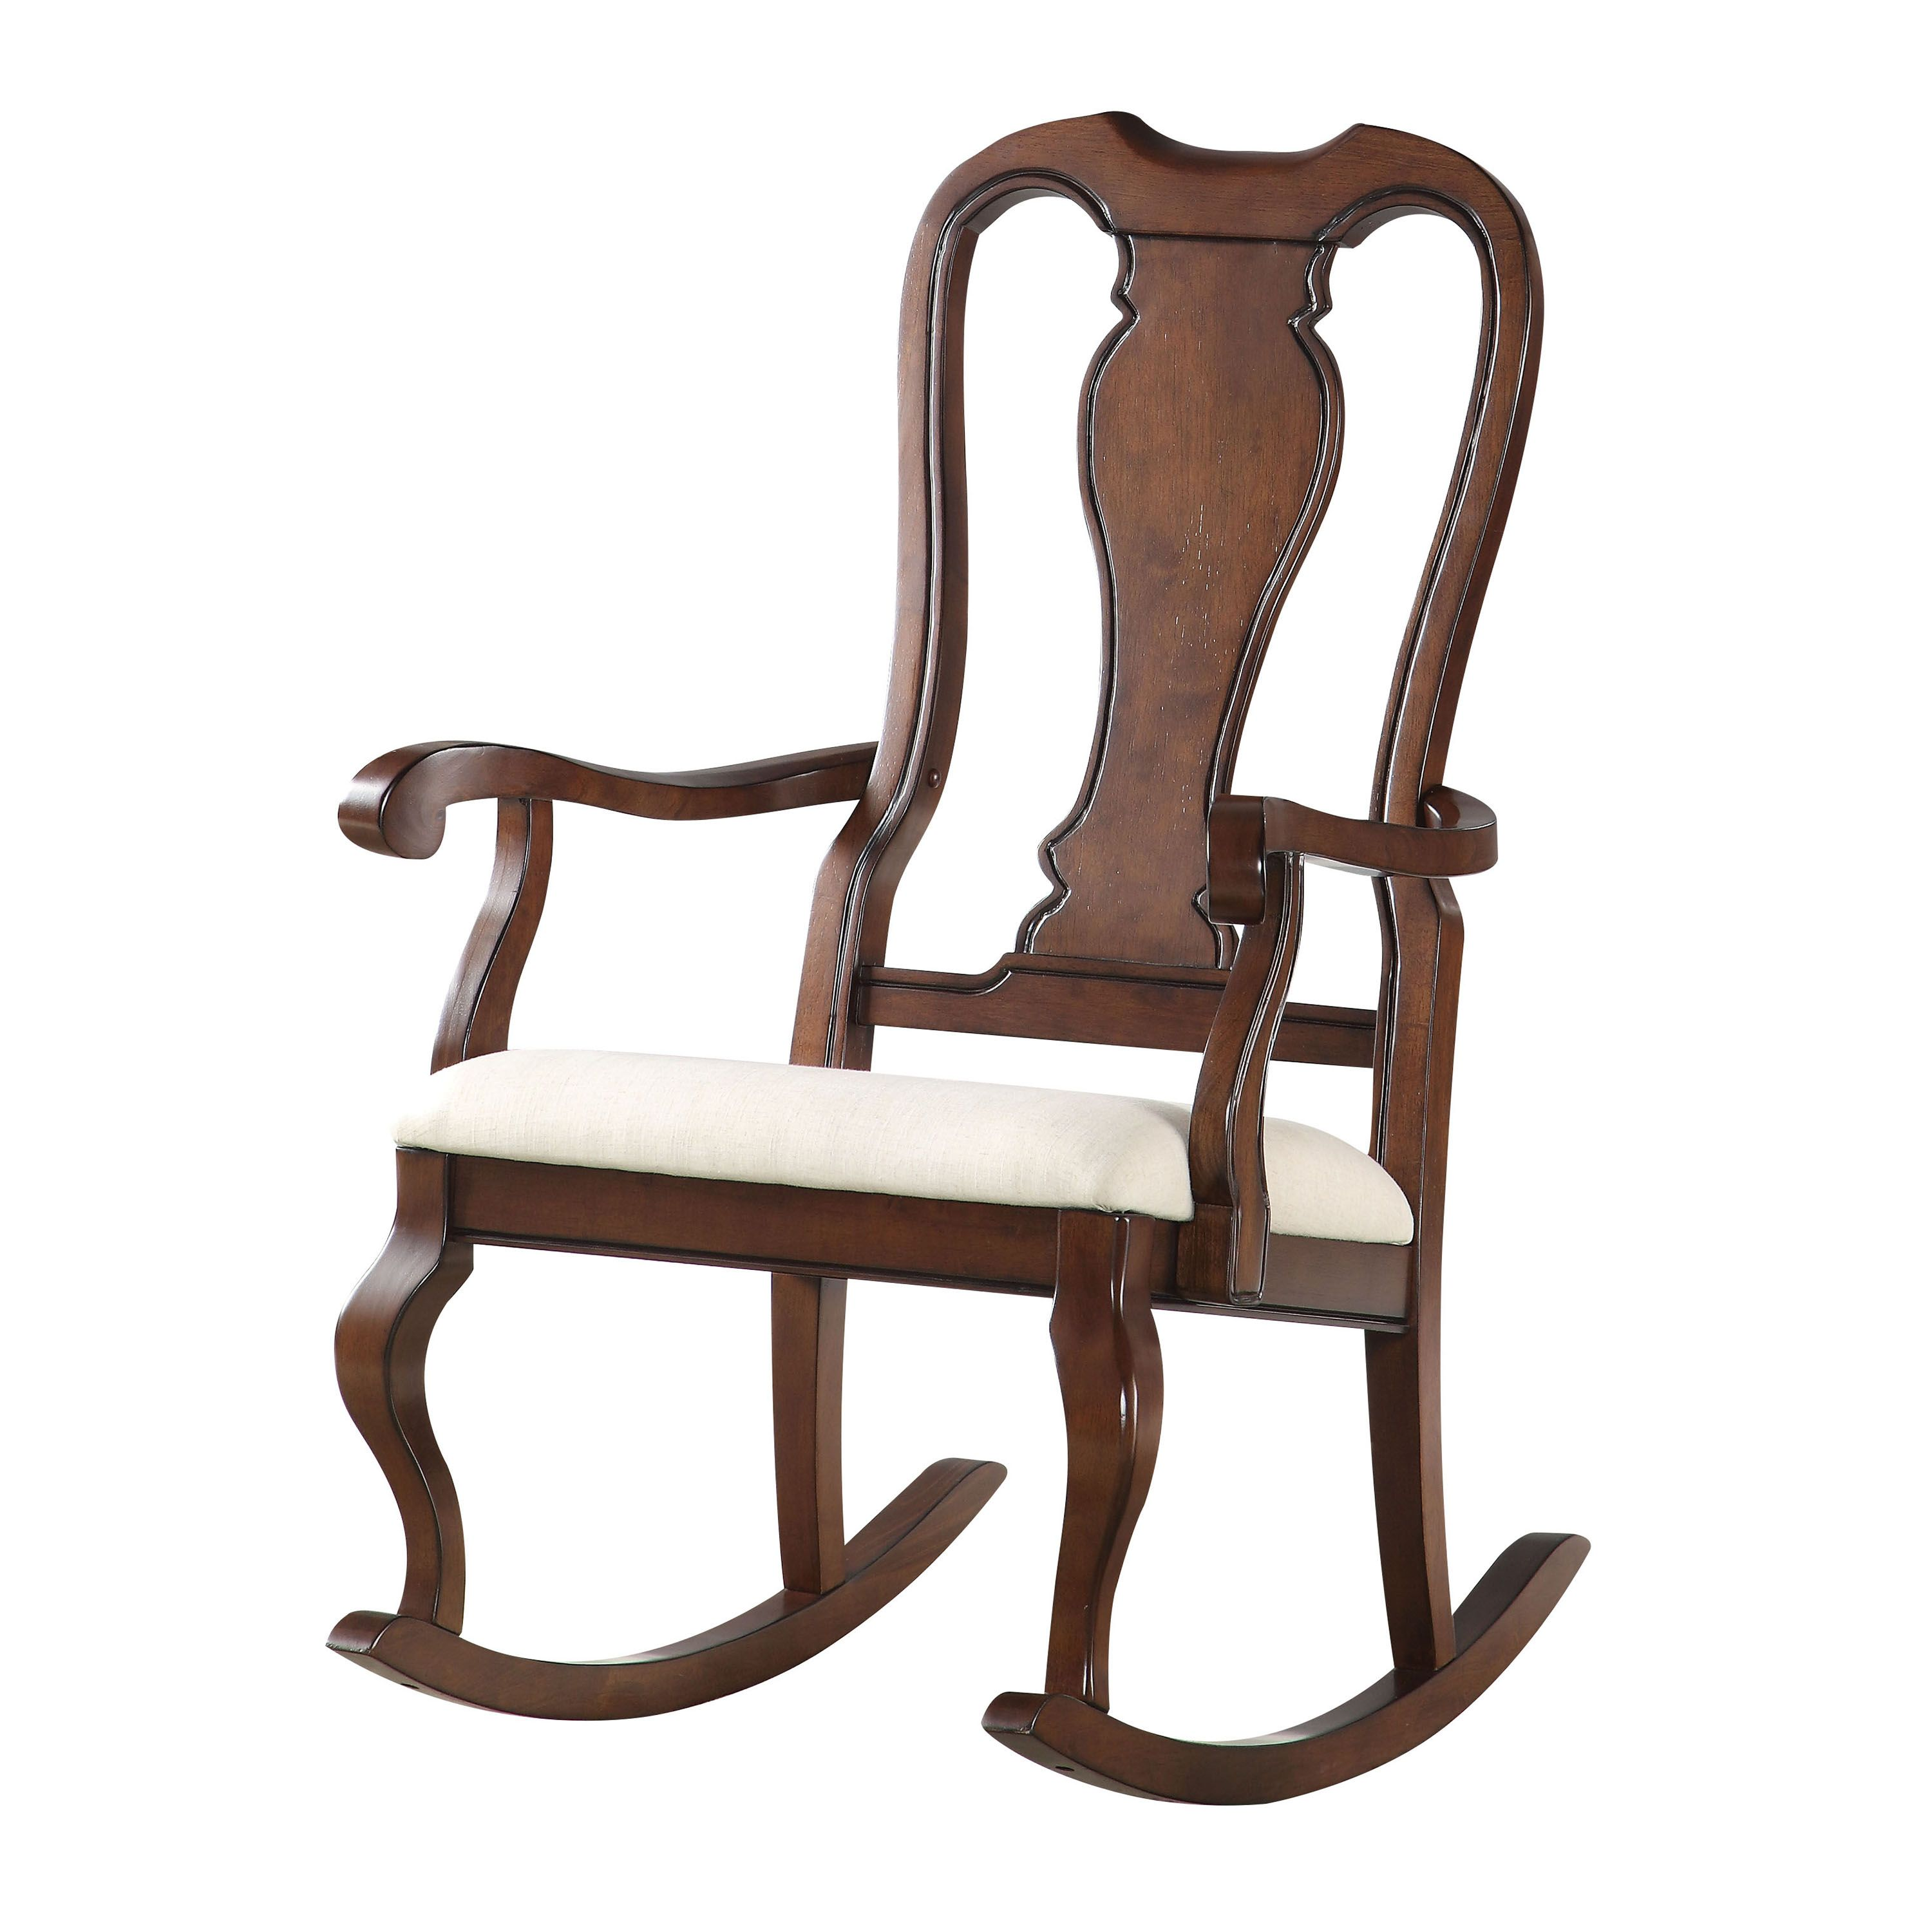 Home Rocking chair, Outdoor rocking chairs, Traditional